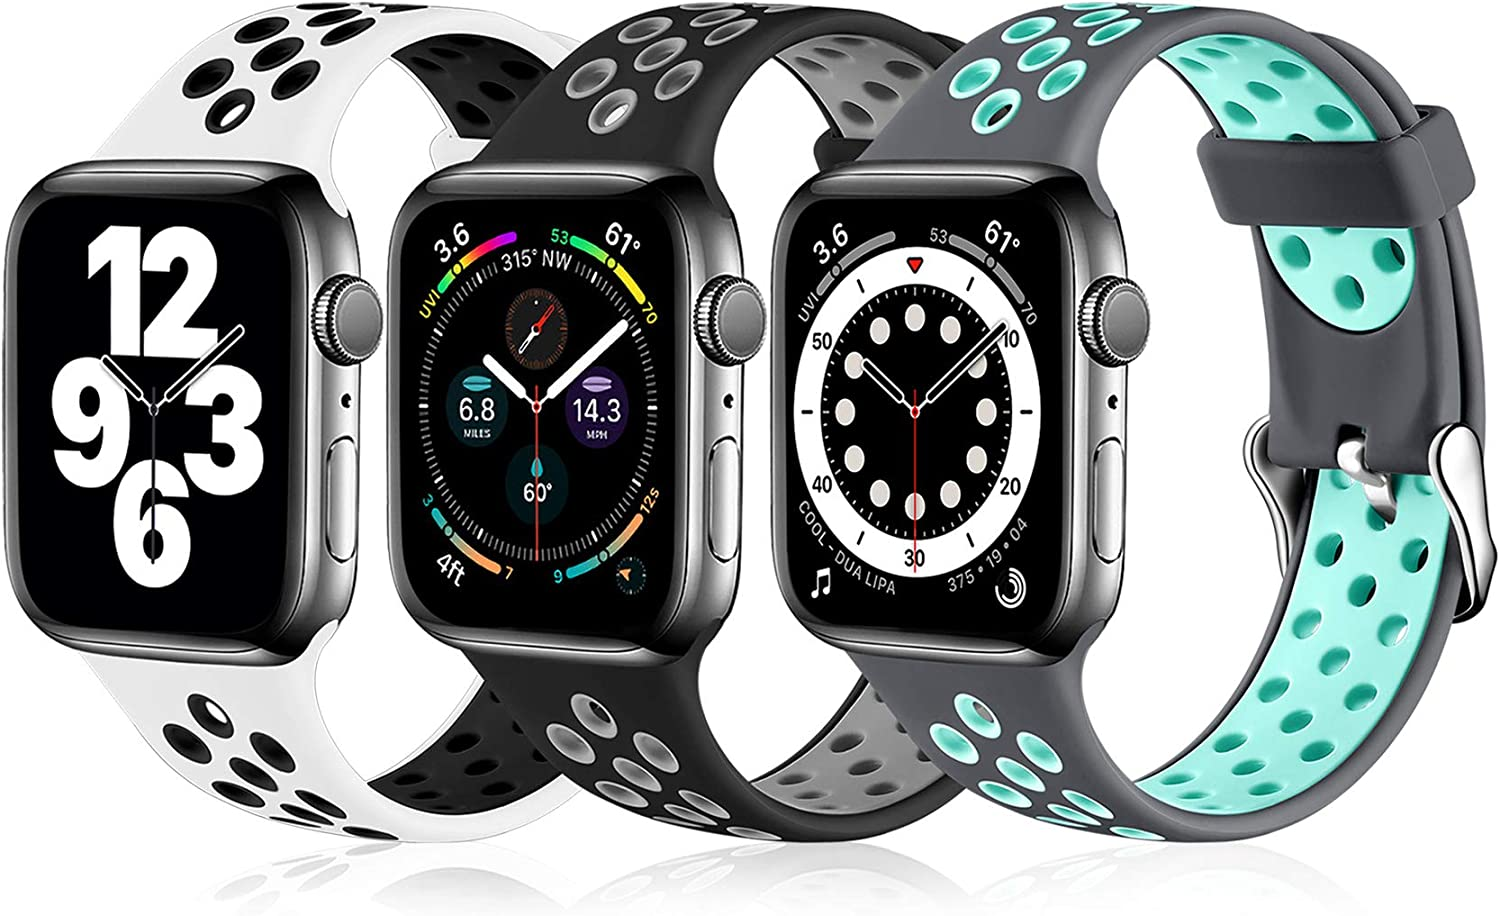 Ouwegaga Compatible with Apple Watch Band 42mm 44mm Soft Silicone Breathable Air Holes Sport Bands for iWatch Series 6 5 4 3 2 1 SE Women Men Black/Gray White/Black Gray/Teal M/L 3 Pack